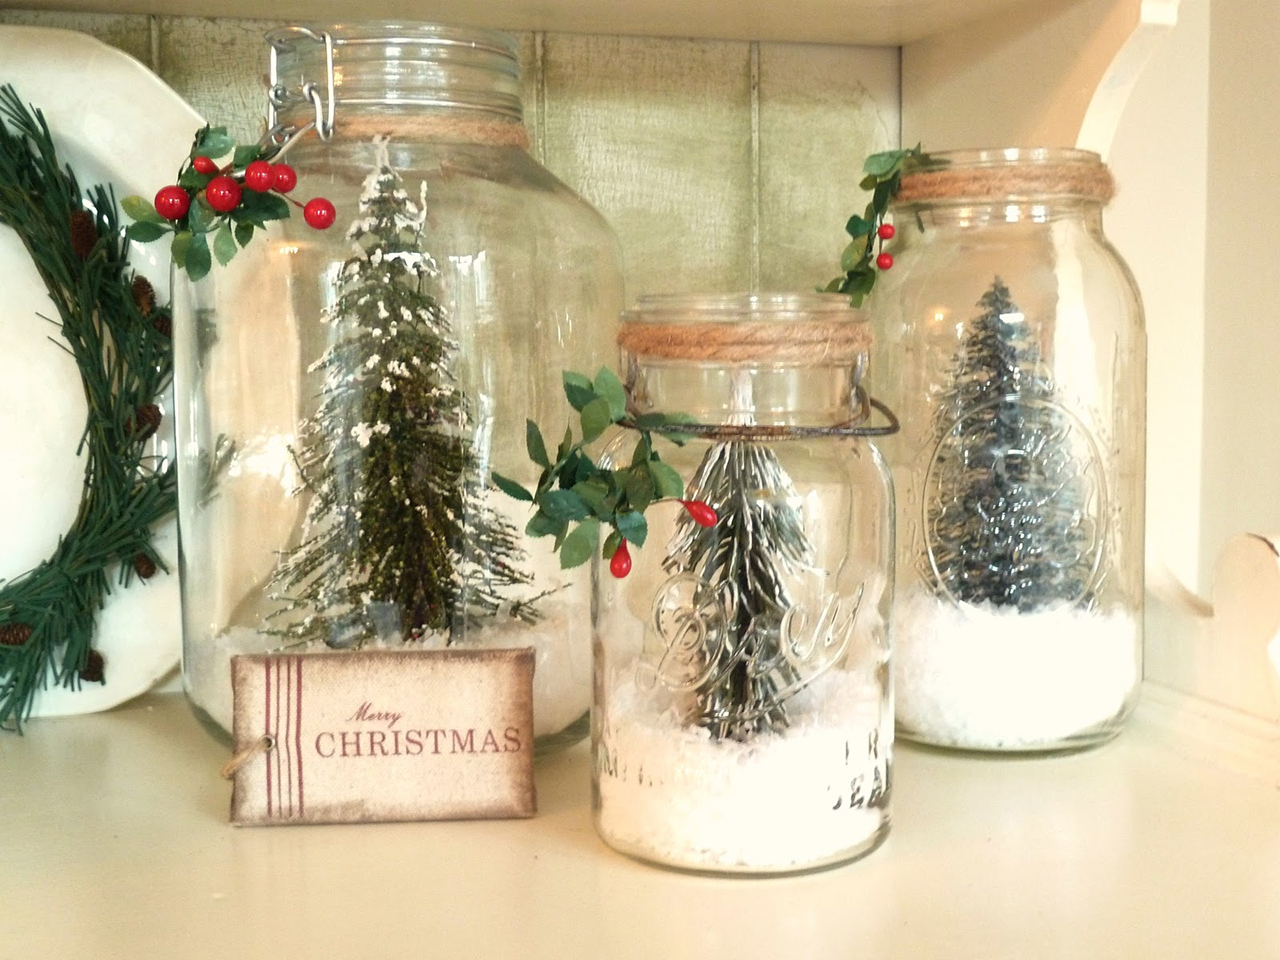 diy christmas snow globes - Indoor Christmas Decorations Ideas